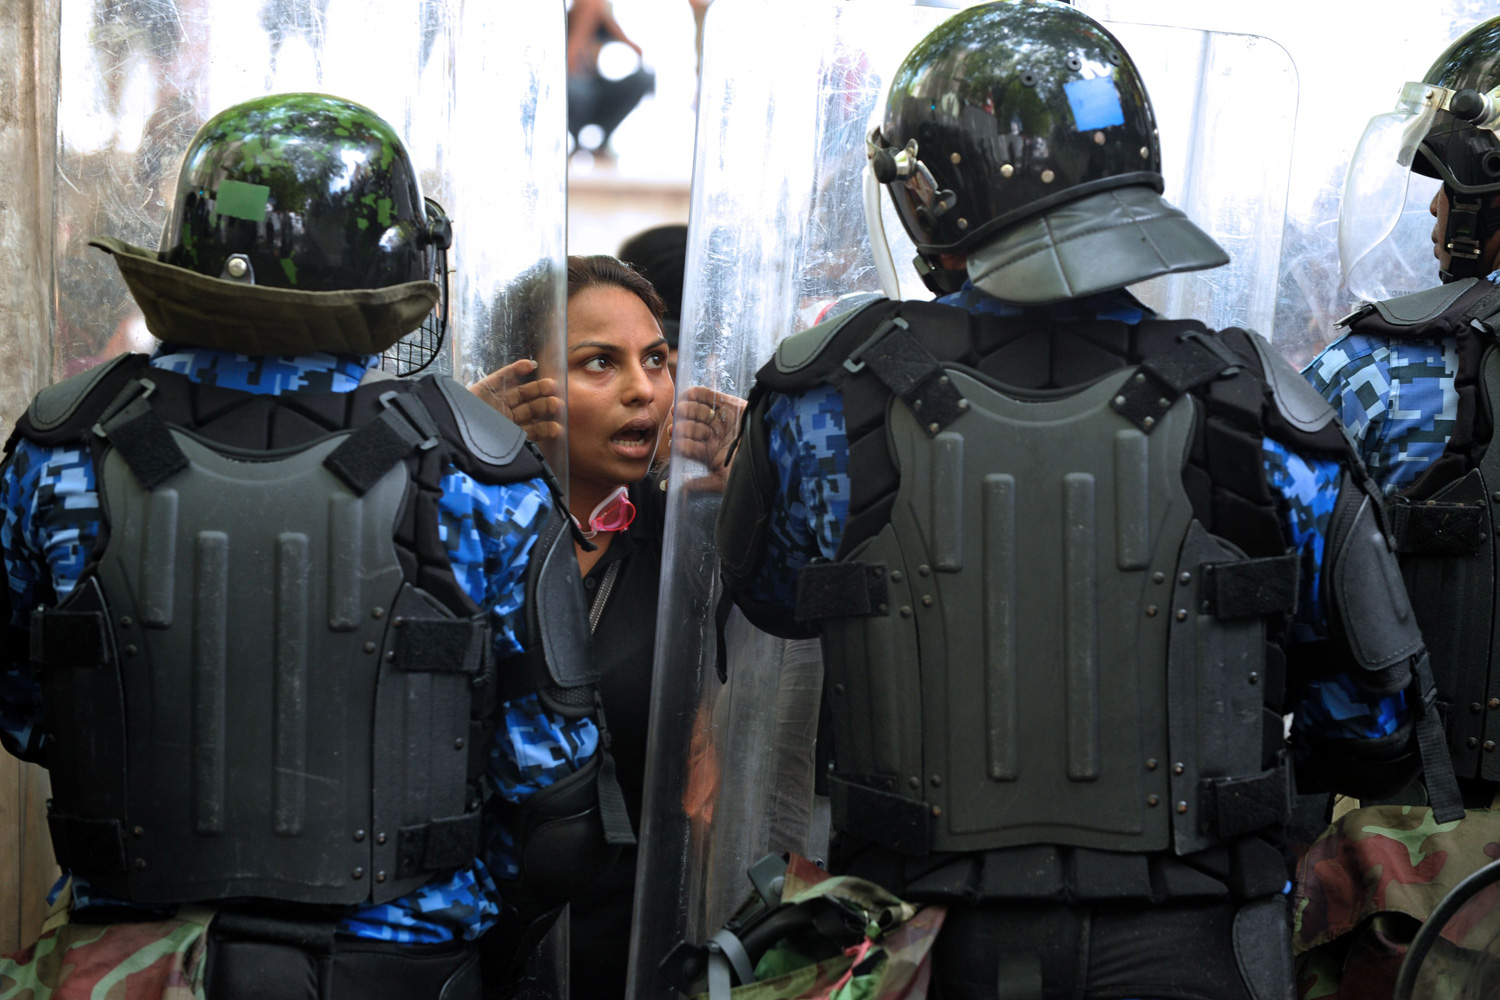 March 1, 2012. Maldivian policemen stand guard as a protestor shouts slogans during a rally in Male.